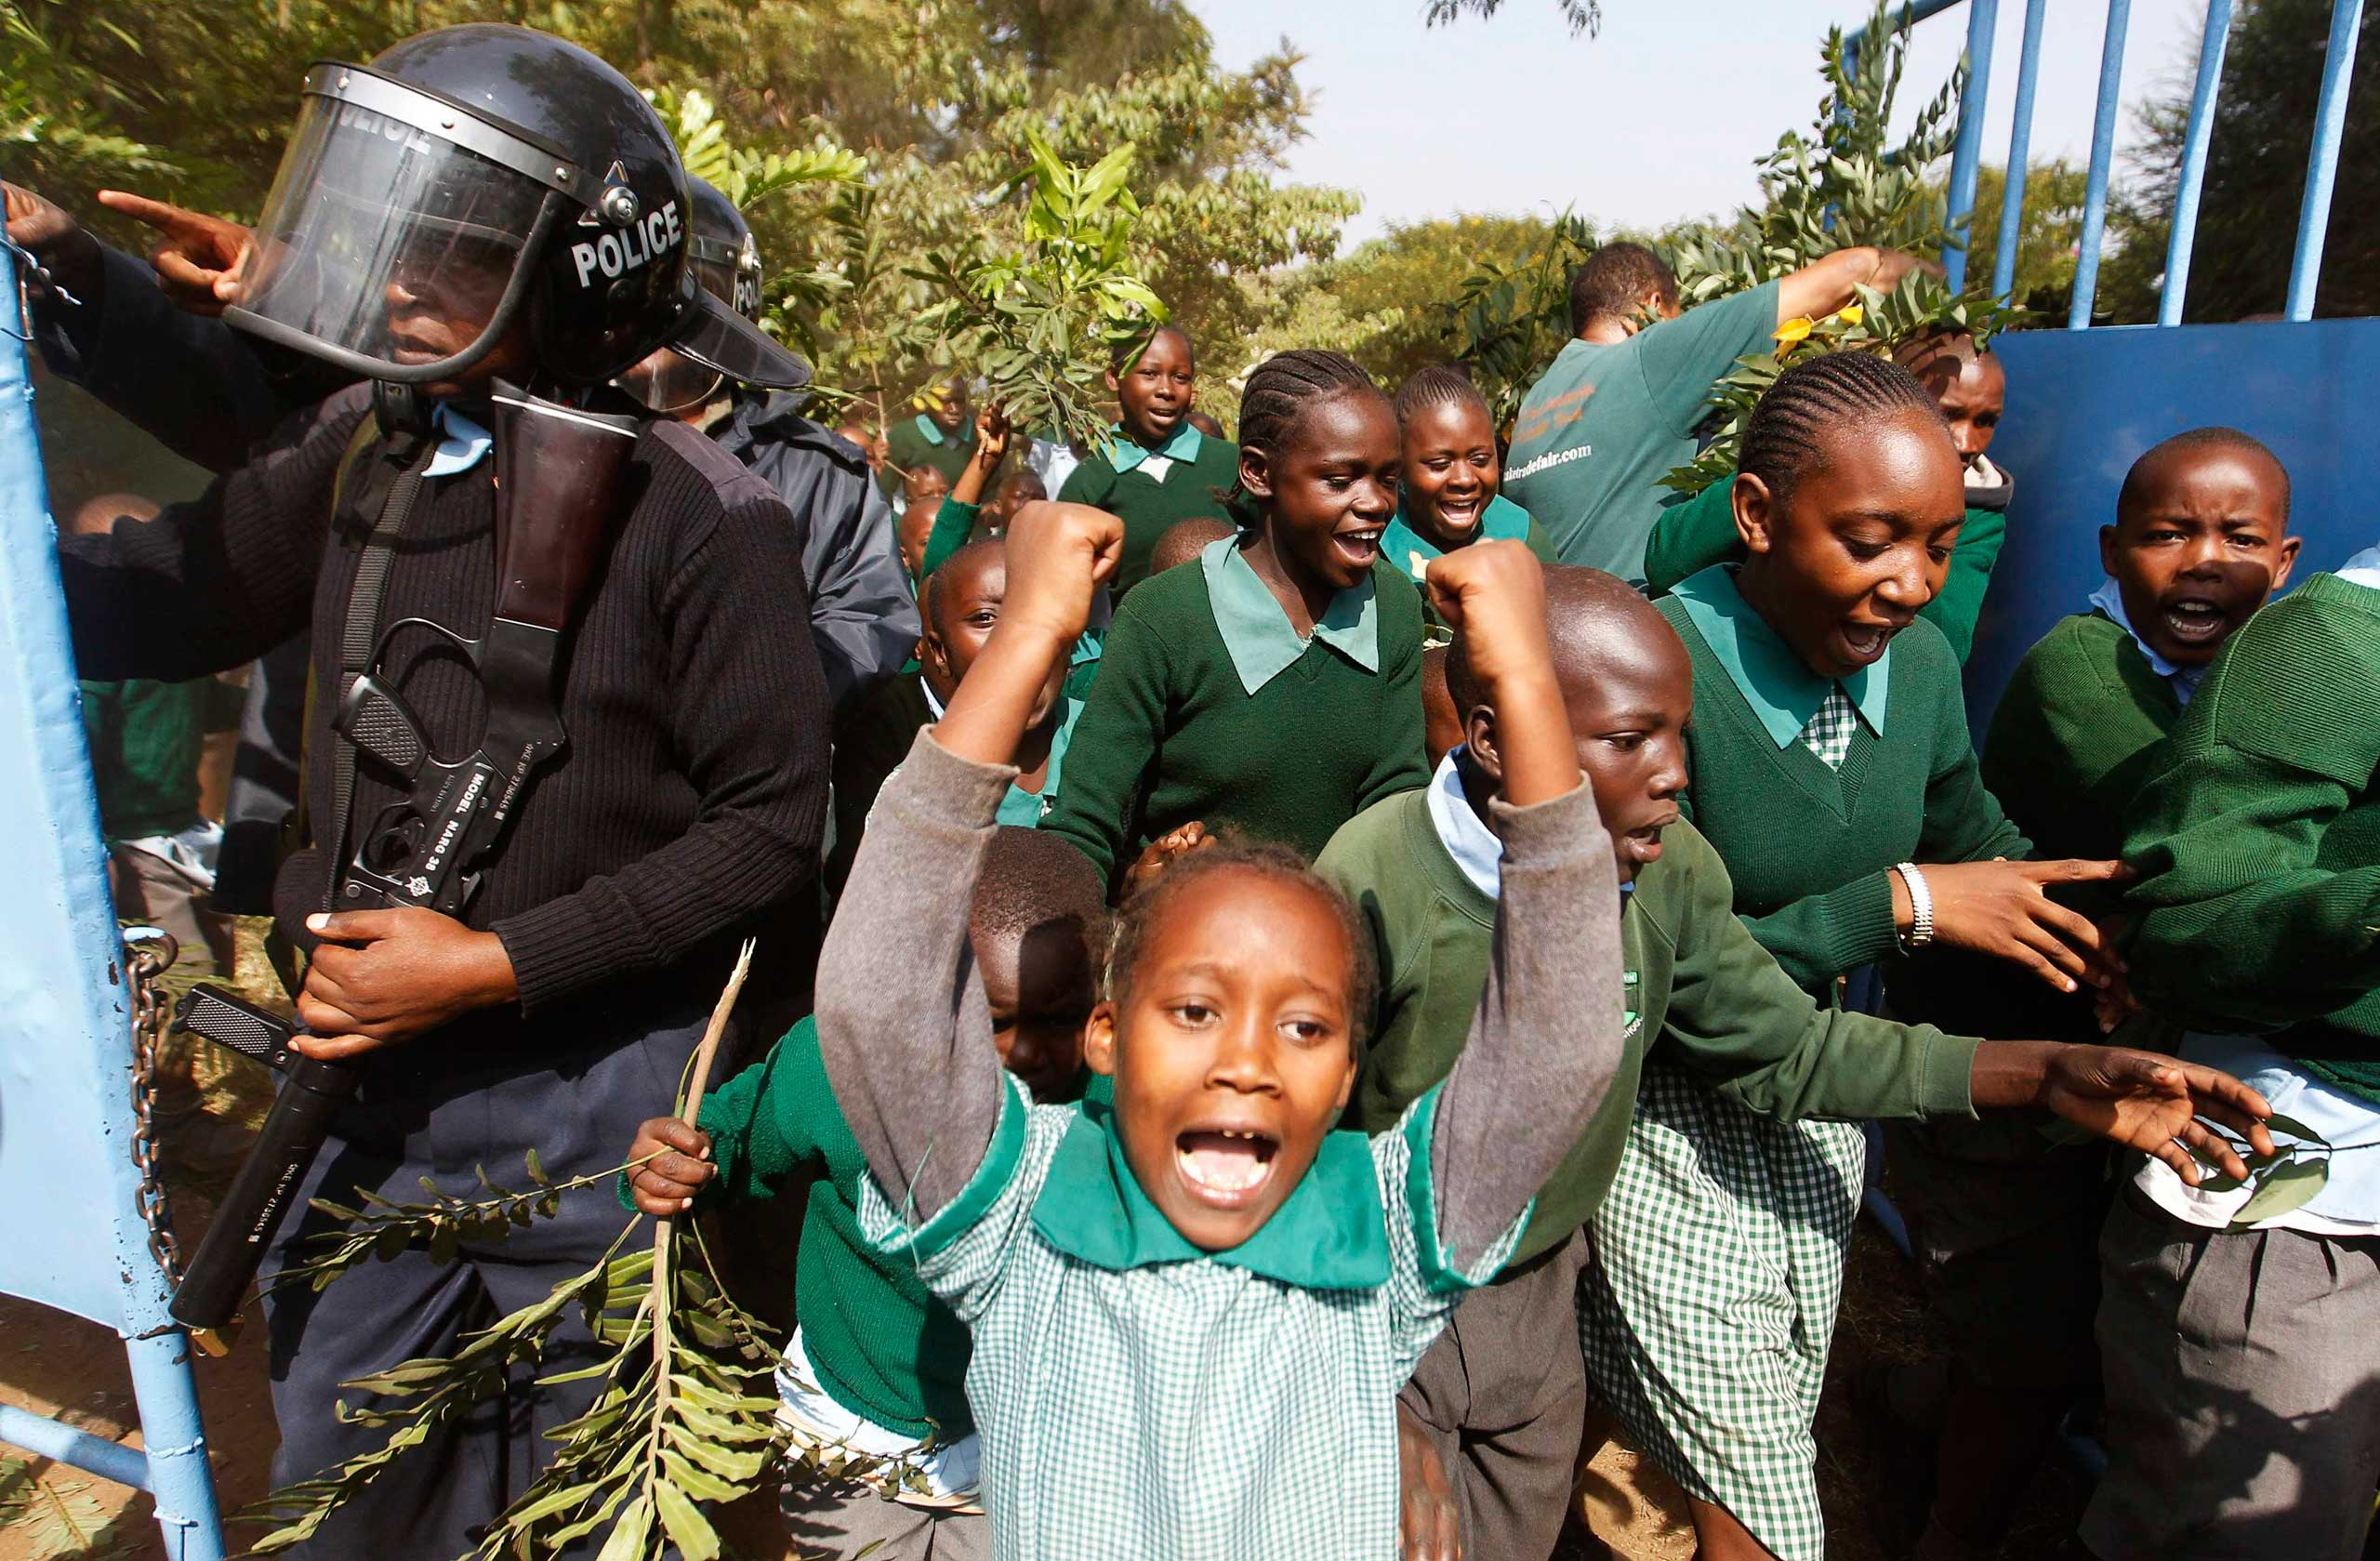 Students from Langata Primary School run past riot police as they protest against a perimeter wall illegally erected by a private developer around their school playground in Nairobi,  Jan. 19, 2015.